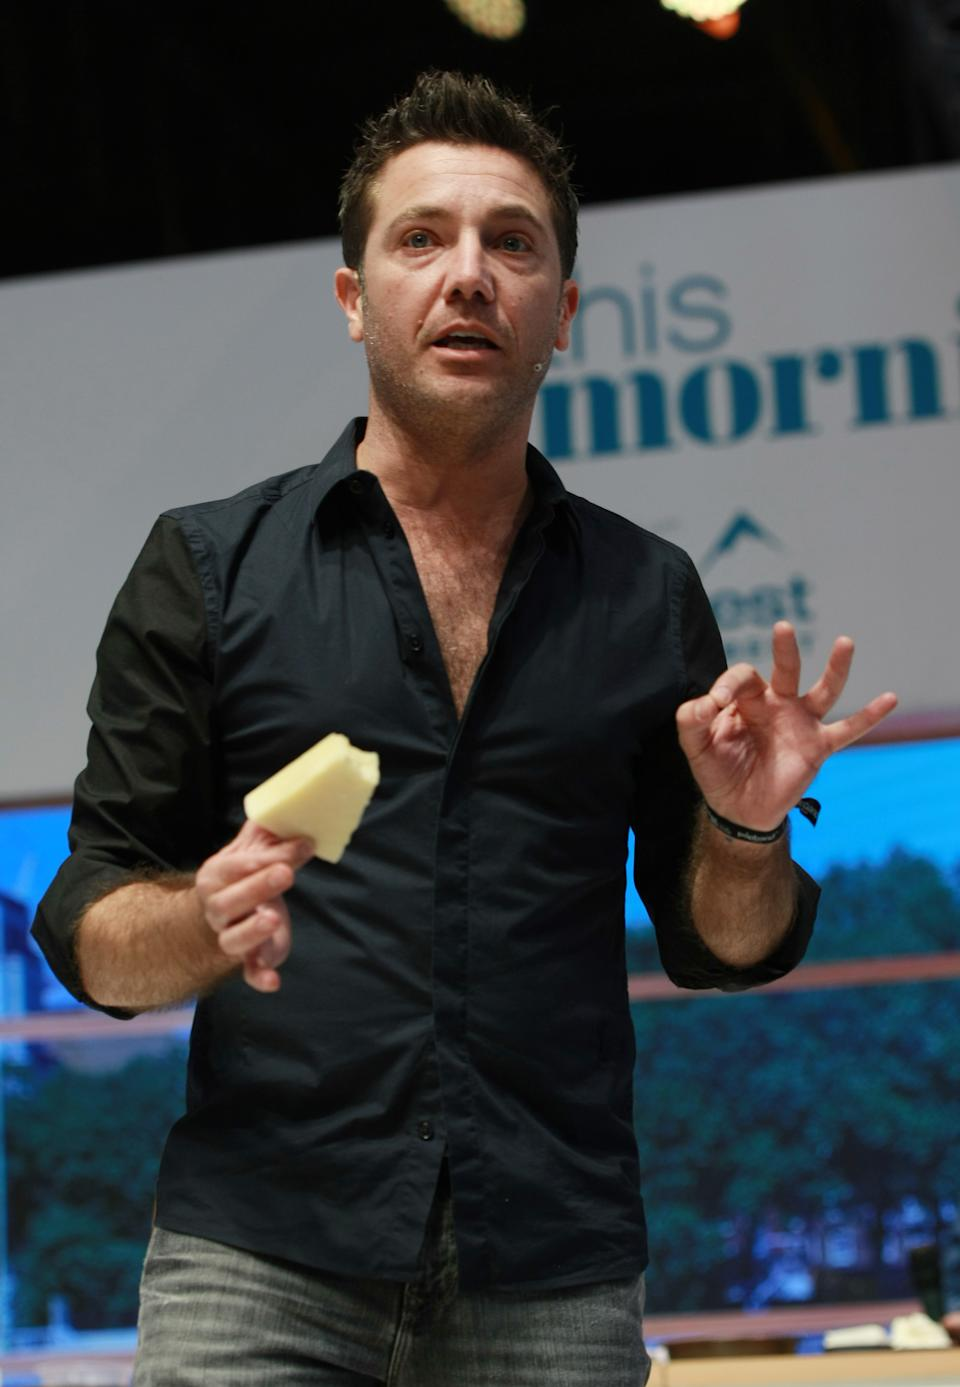 Gino D'Acampo at This Morning Live held at the NEC Birmingham on May 18, 2017. (Photo credit should read Graham Stone / Barcroft Media via Getty Images)